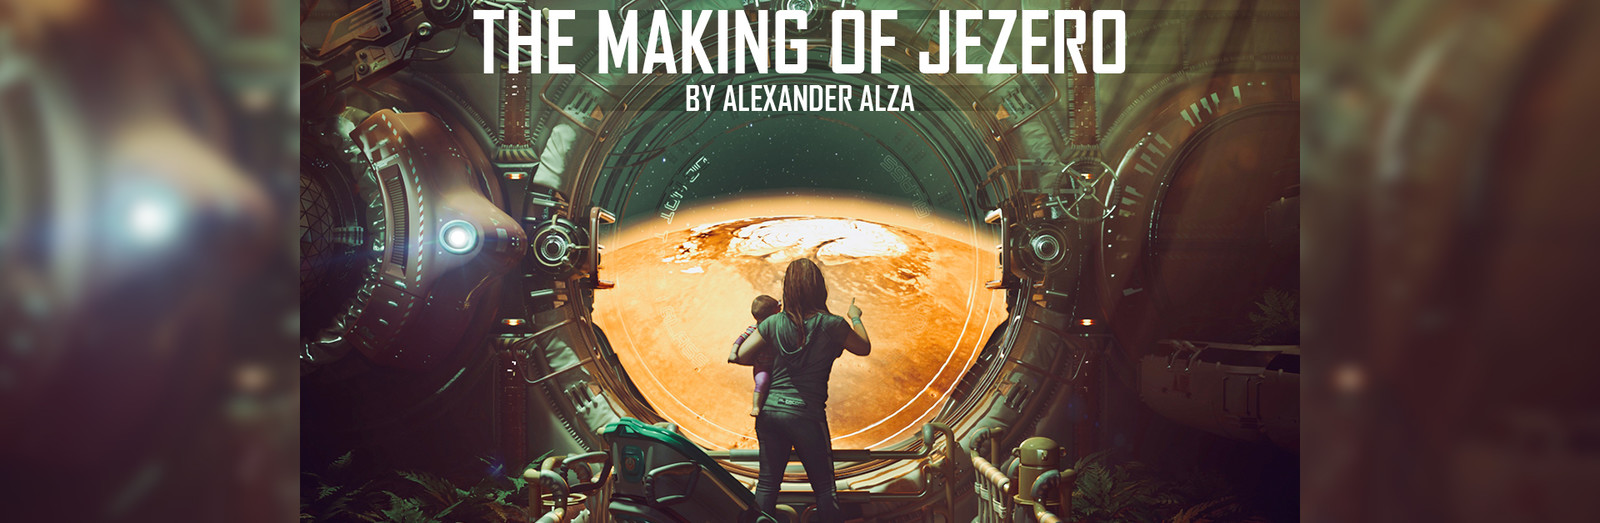 To get more in-depth with my process please check out my accompanying blog, The Making of Jezero at https://www.artstation.com/alexanderalza/blog/vXR3/the-making-of-jezero